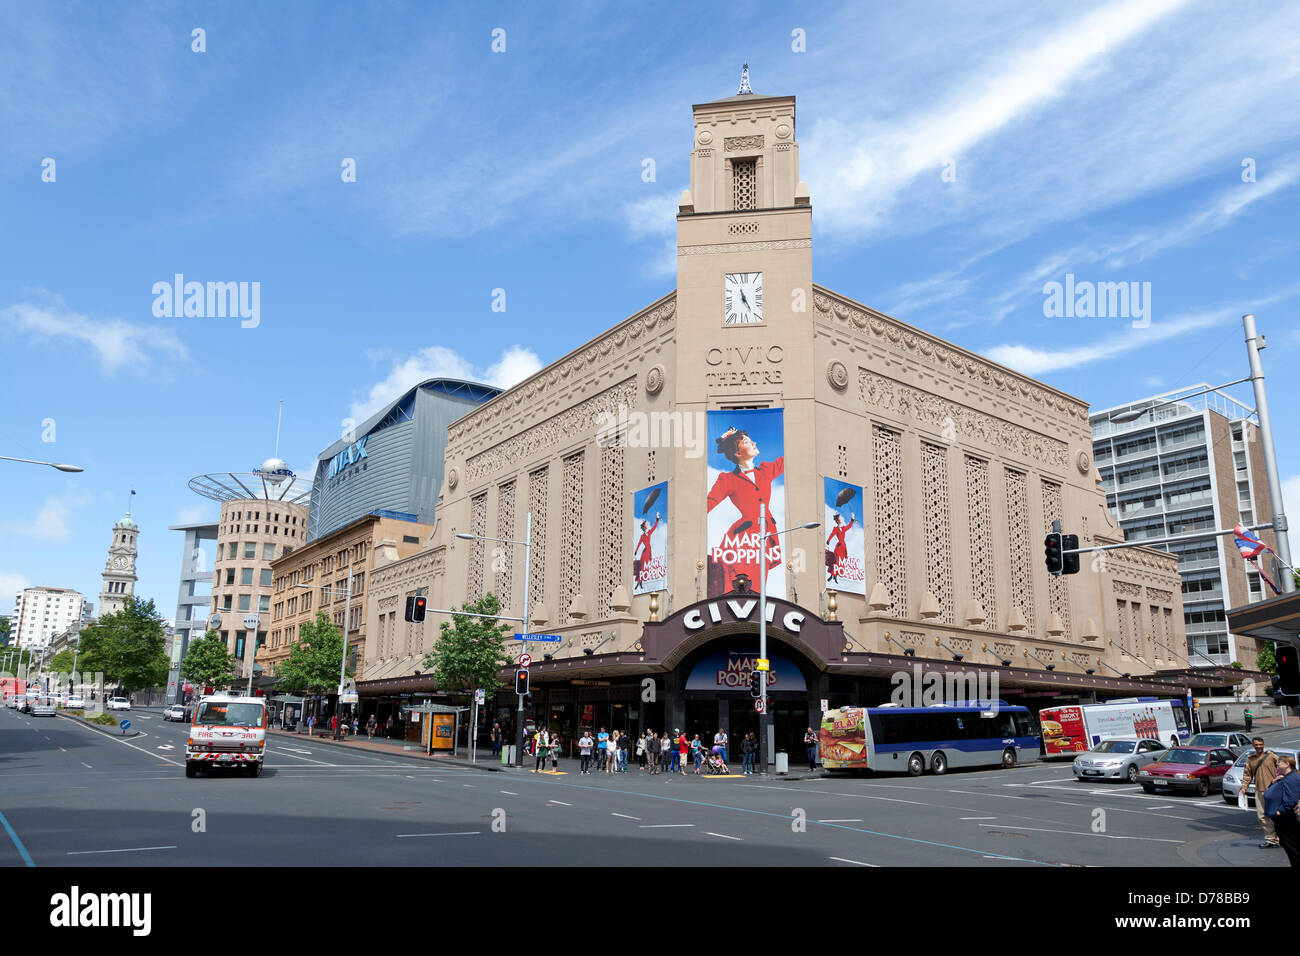 Civic Theatre in Auckland, New Zealand - Stock Image